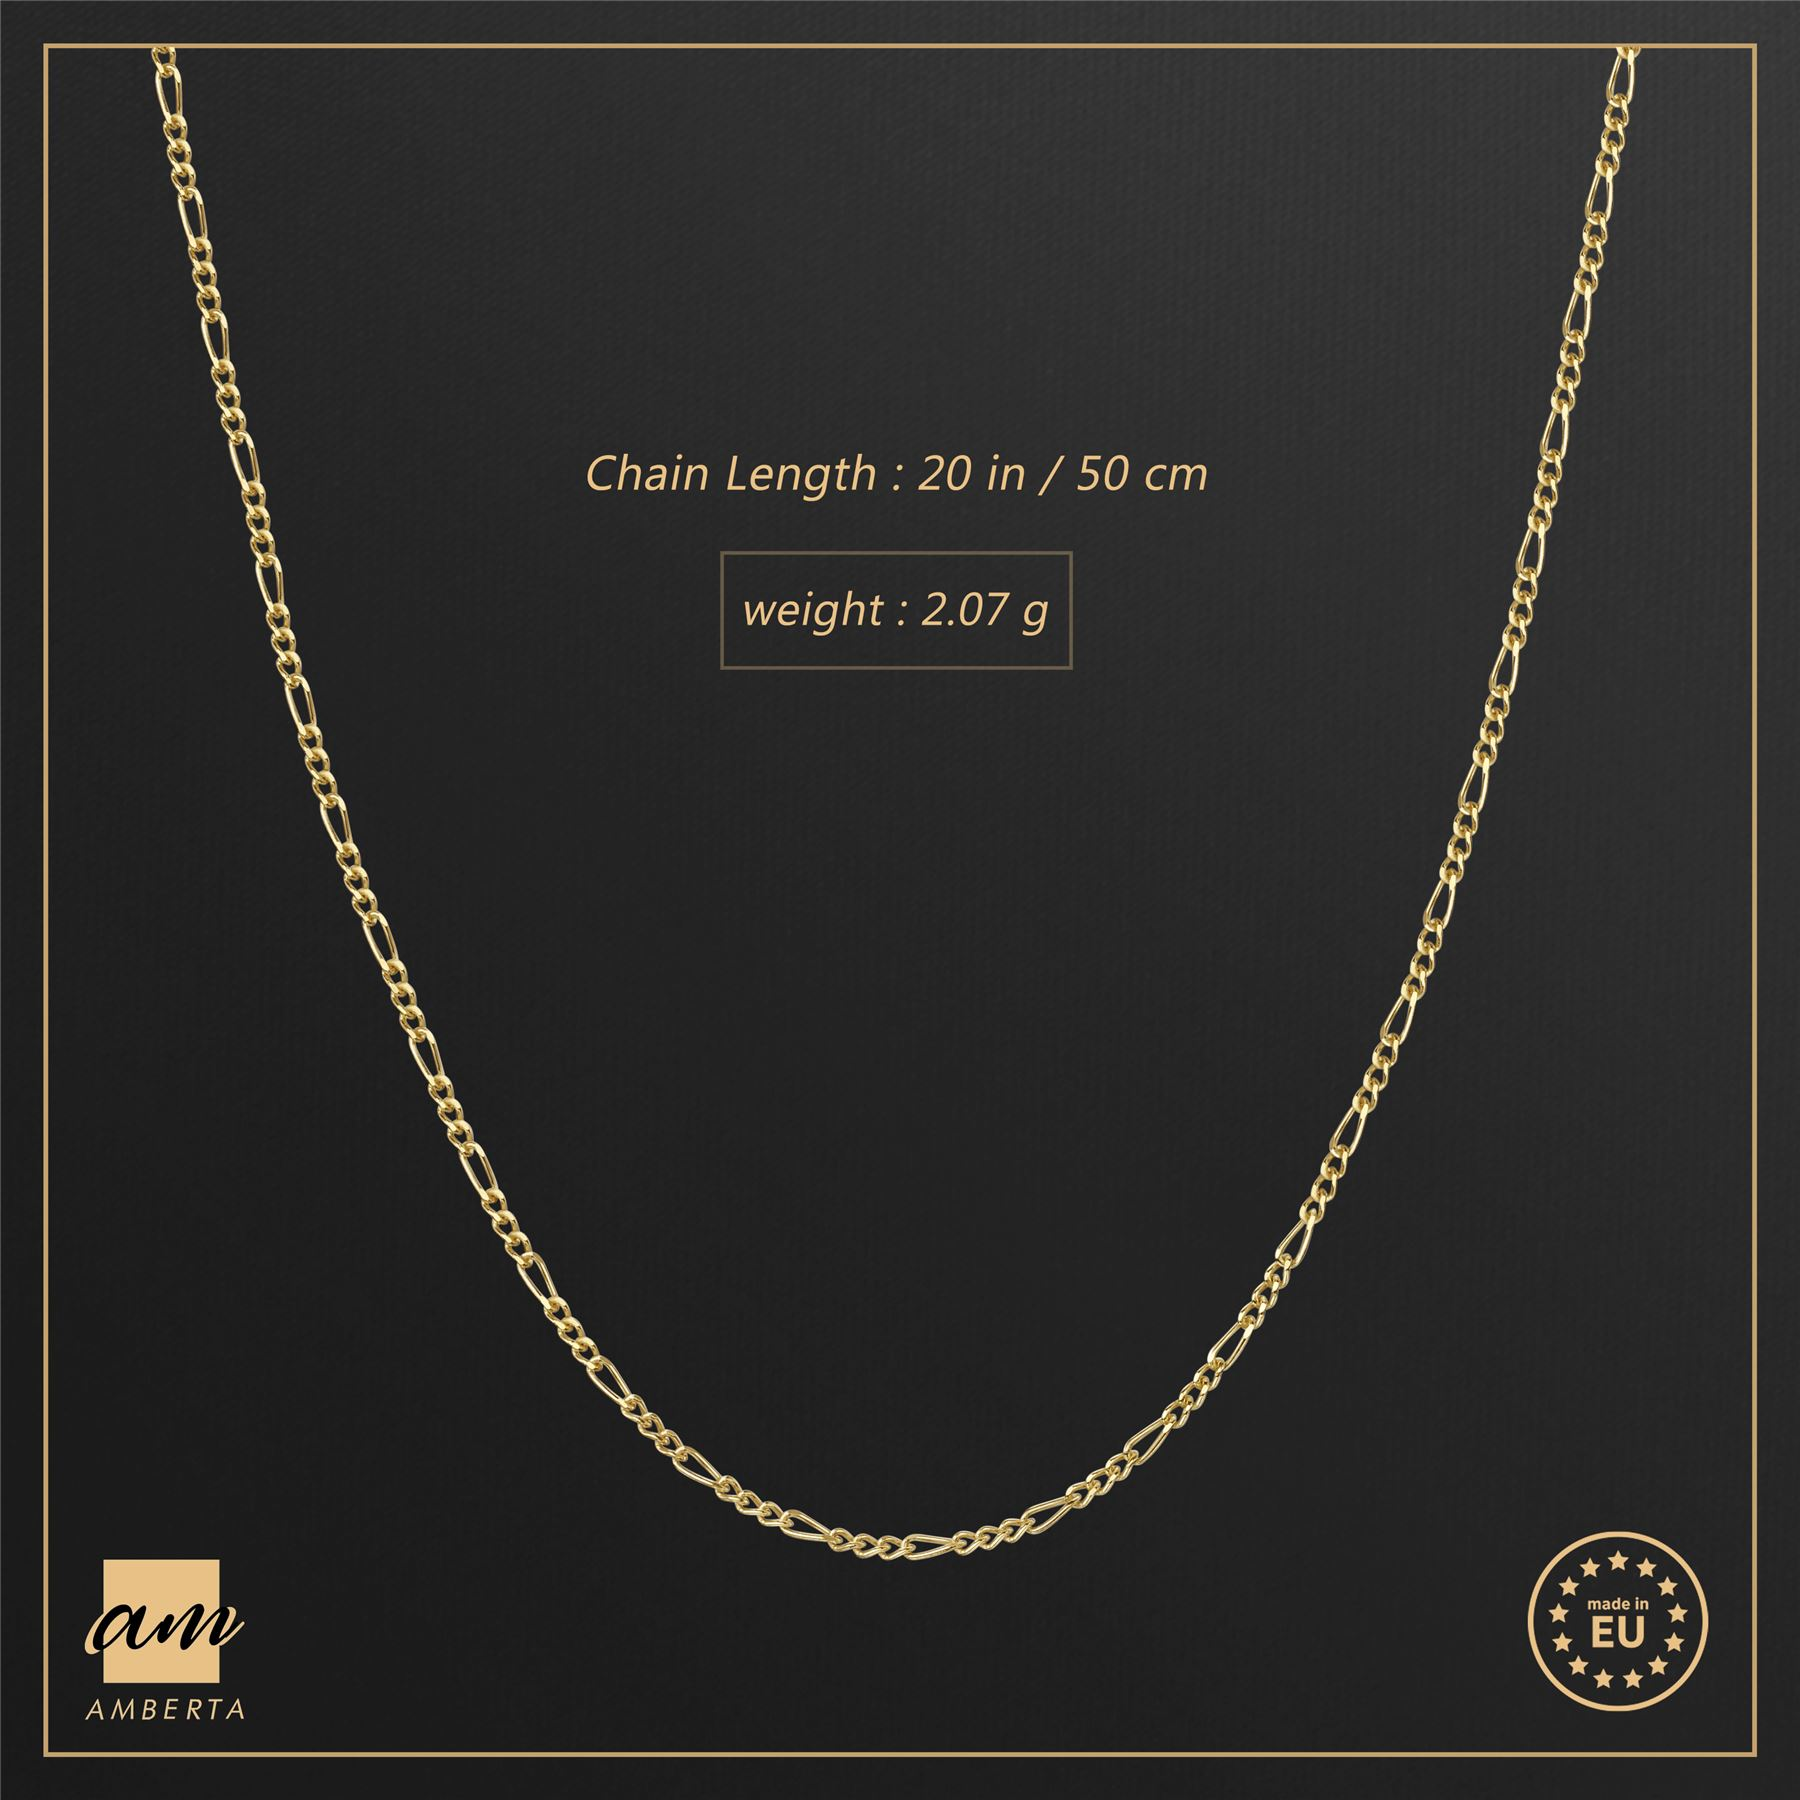 Amberta-Genuine-Gold-Plated-on-Real-925-Sterling-Silver-Necklace-Chain-Italy 縮圖 33